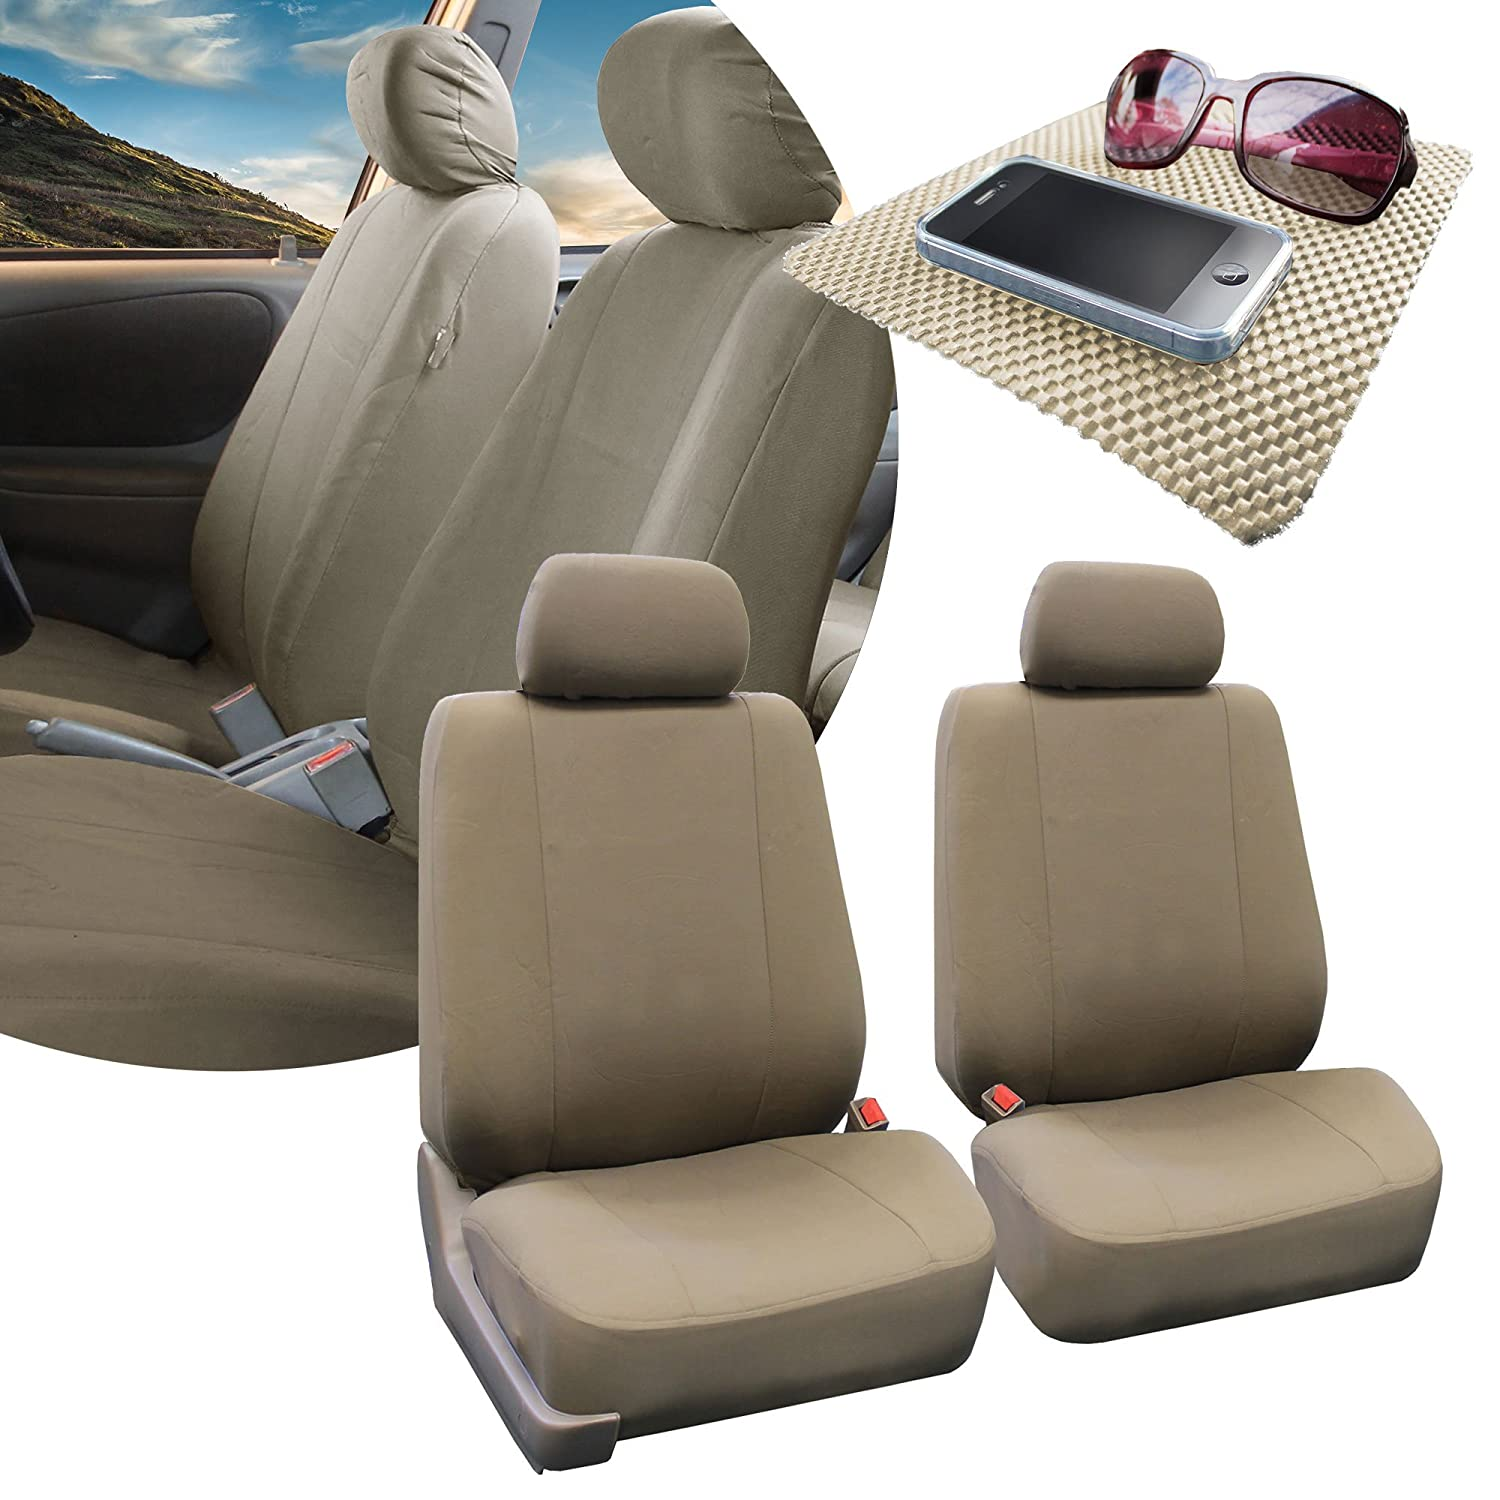 FH GROUP FH-FB052115 Full Set Multifunctional Flat Cloth Car Seat Covers, Airbag Ready and Split, Taupe Color - Fit Most Car, Truck, Suv, or Van